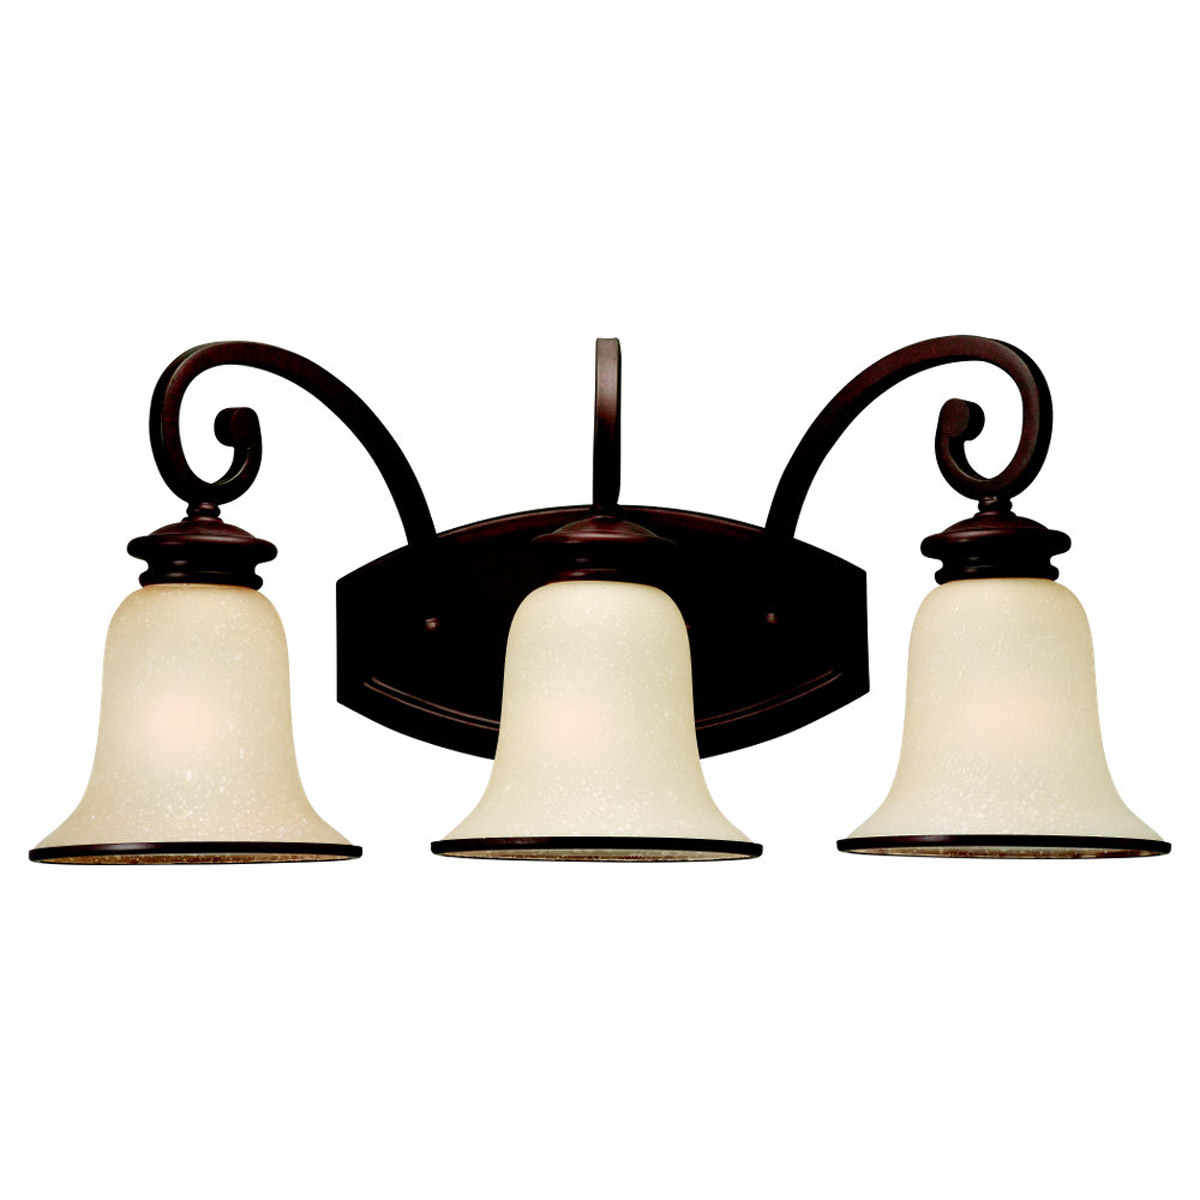 Sea Gull Lighting Acadia 3 Light Bath Vanity in Misted Bronze 44146BLE-814